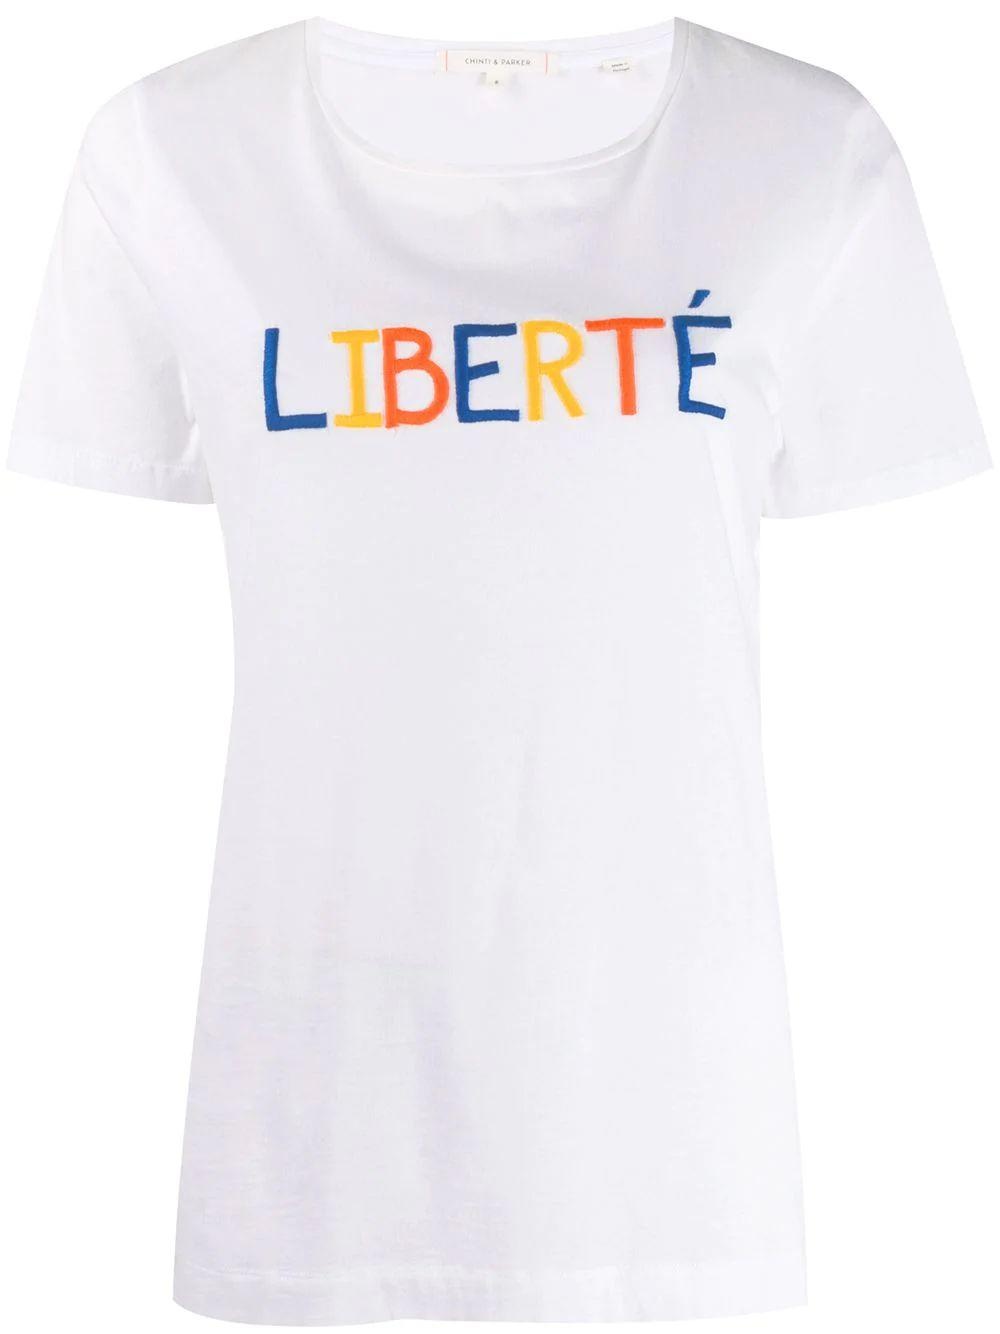 Liberte Short Sleeve Tshirt Item # TP16